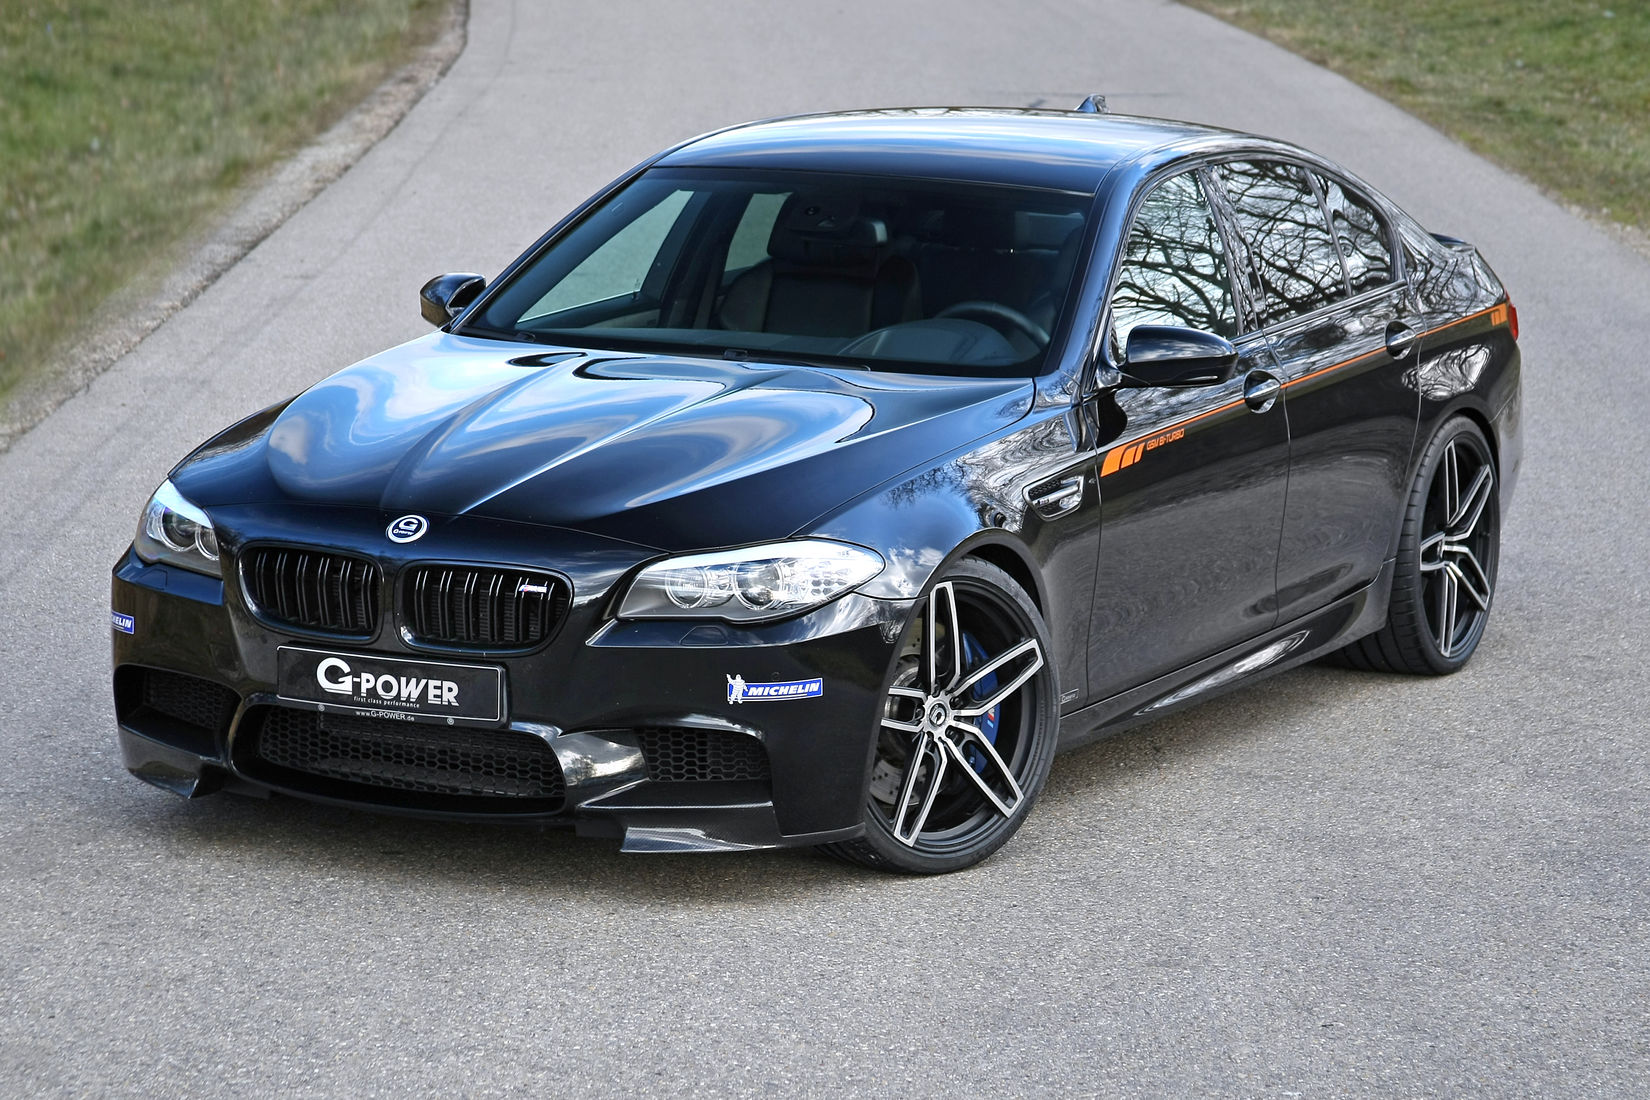 official bmw f10 m5 by g power gtspirit. Black Bedroom Furniture Sets. Home Design Ideas